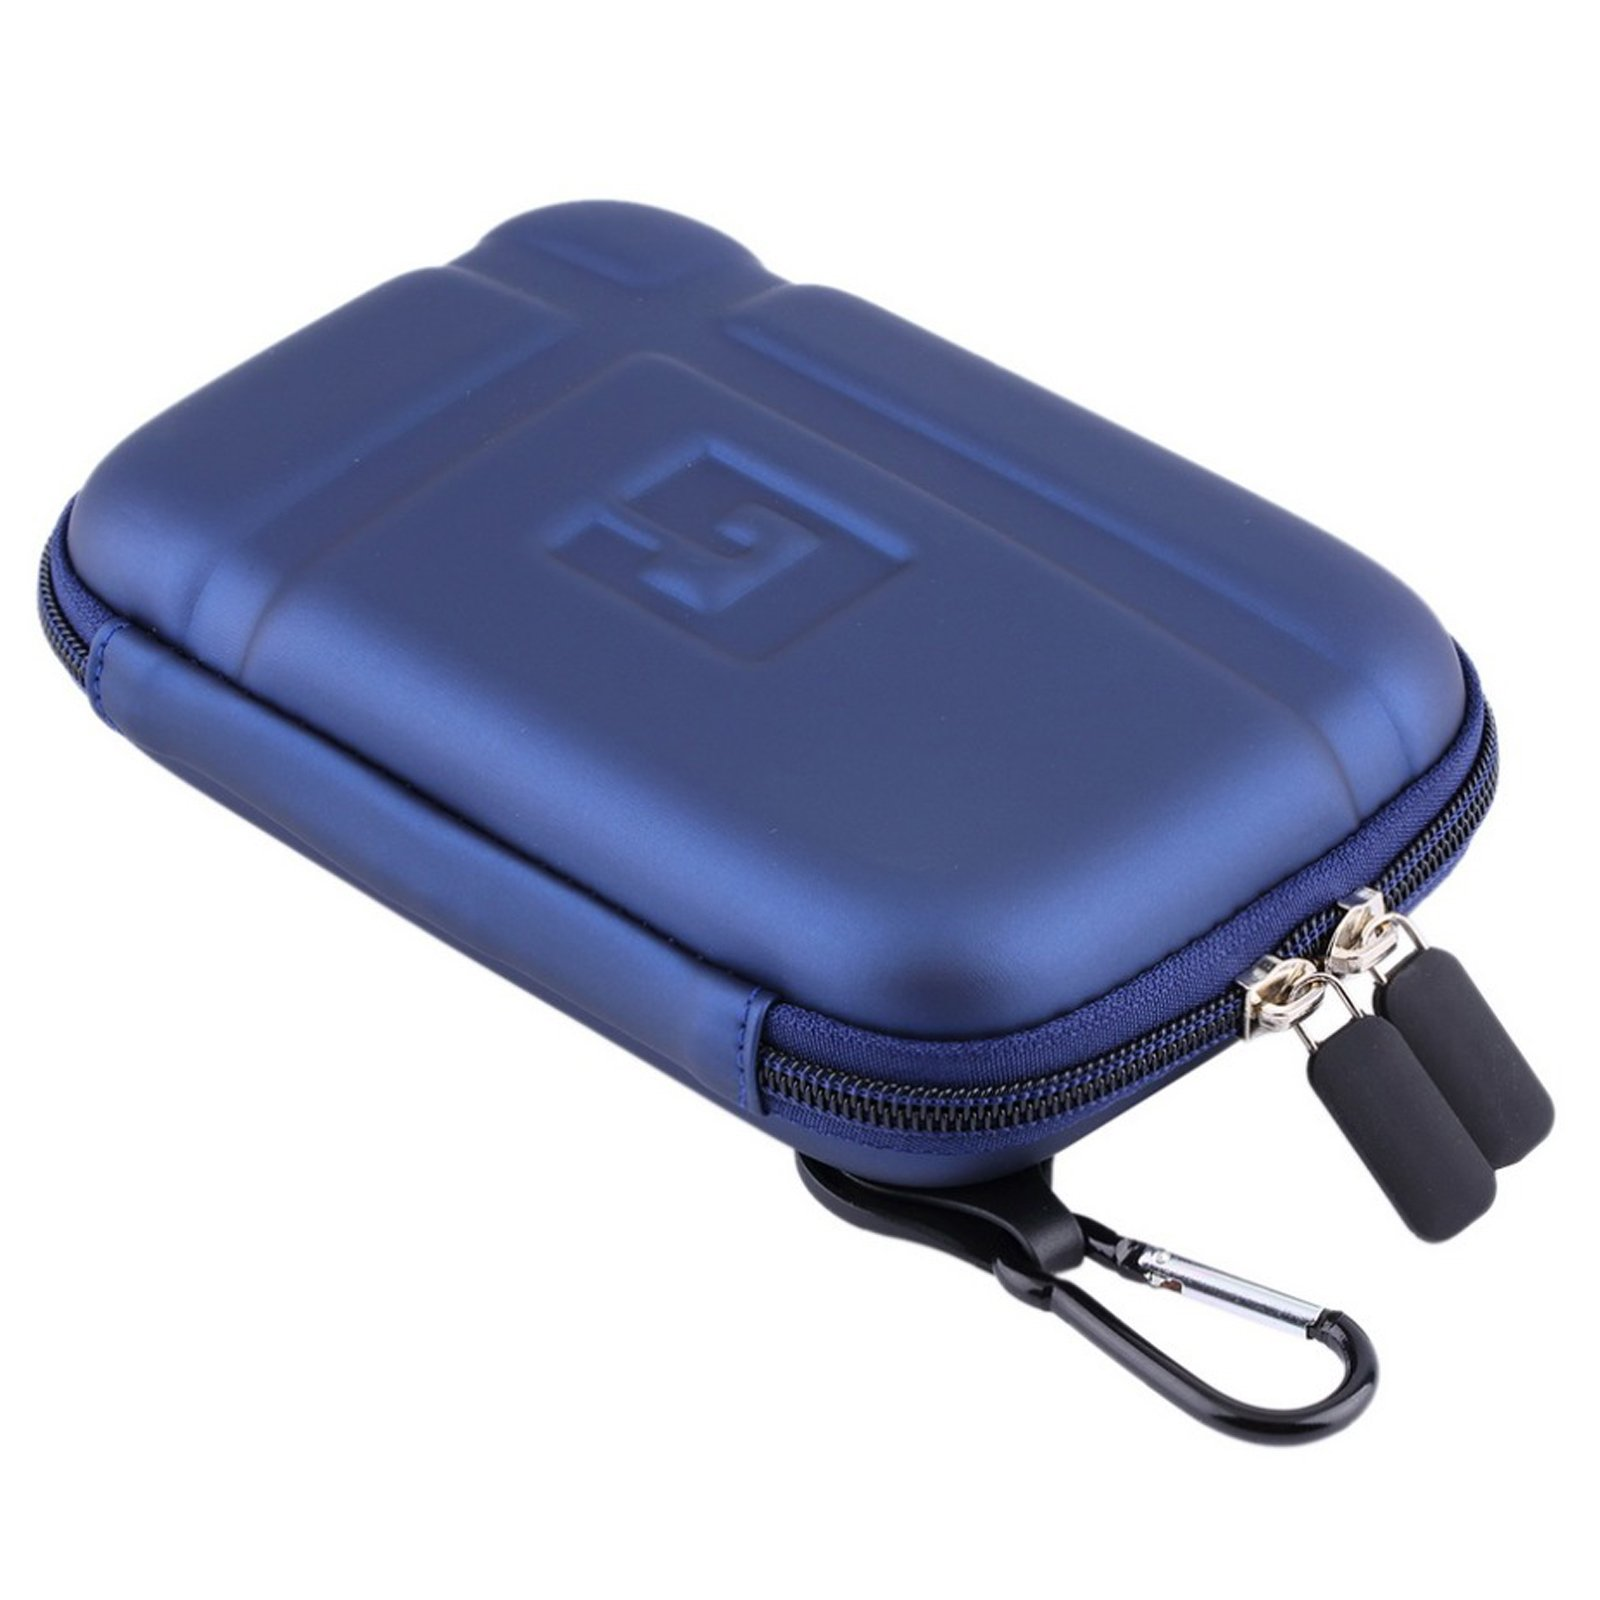 5'' Inch Hard Carrying Travel GPS Case Bag Pouch Protective Shell For 5'' 5.2 Inch Garmin Nuvi 55LM 54LM/54 52LM/52 2597LMT 2577LT 2557LMT 3597LMT TomTom Magellan RoadMate Devices Blue